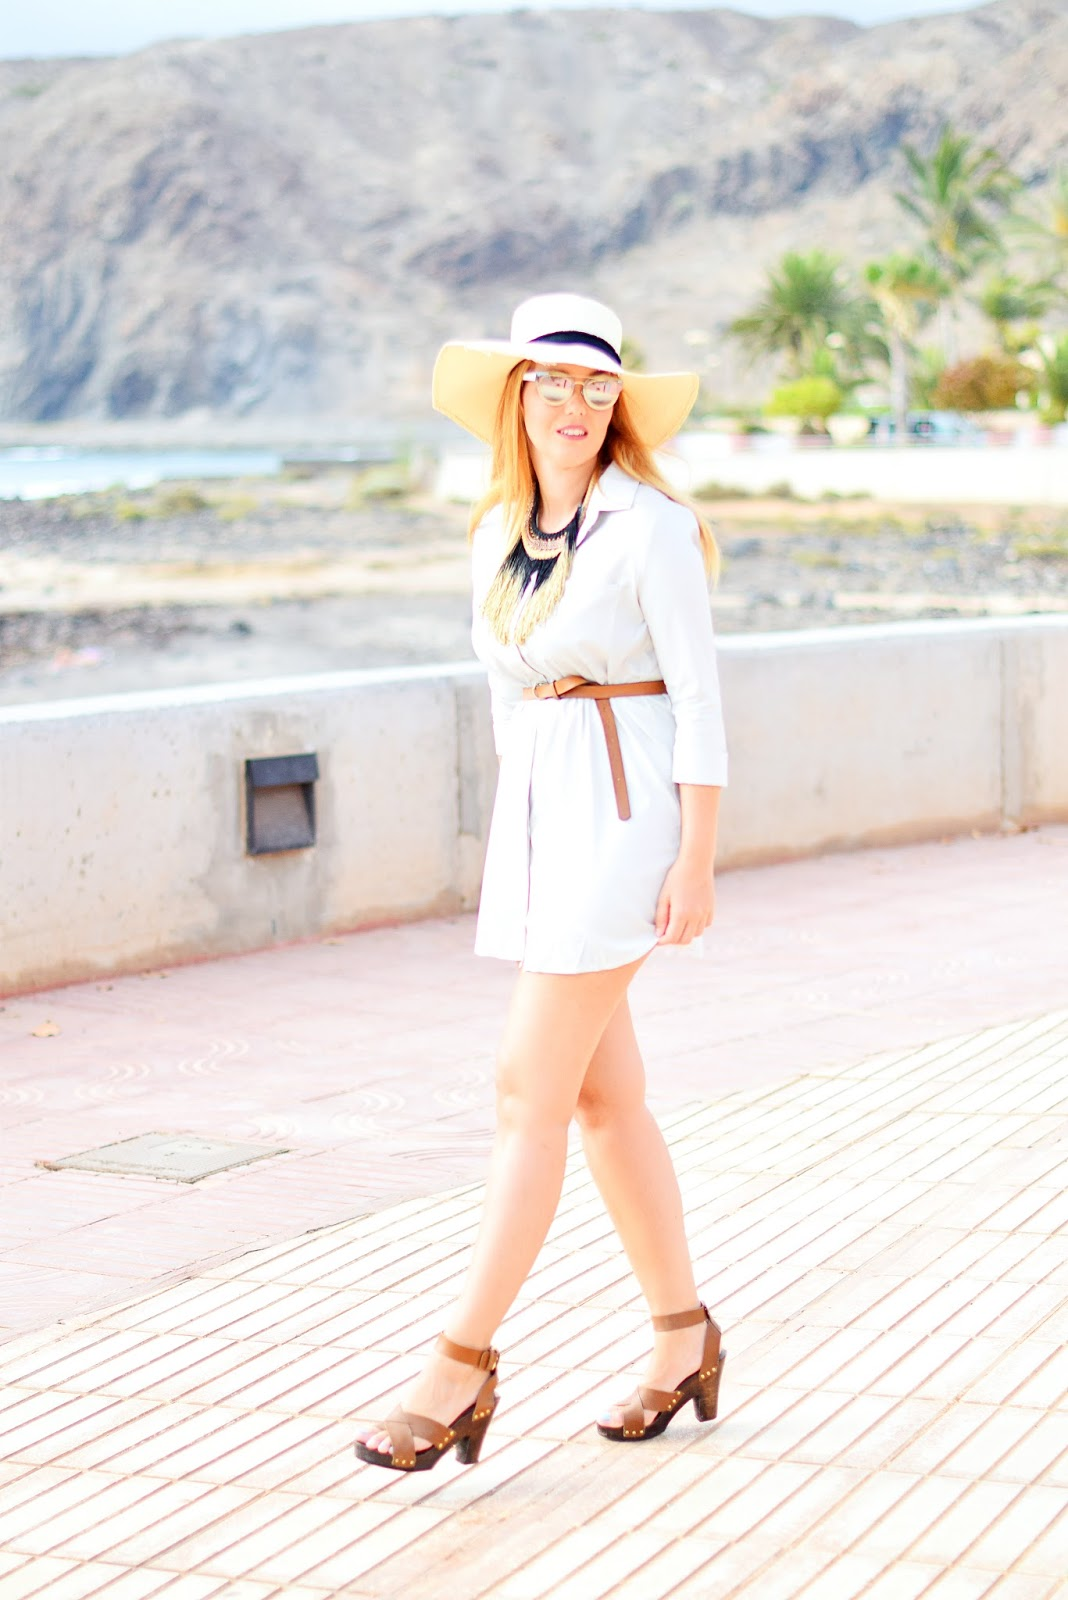 nery hdez, vestido camisero, opticalh, dior chromic, look para la playa, beach look,